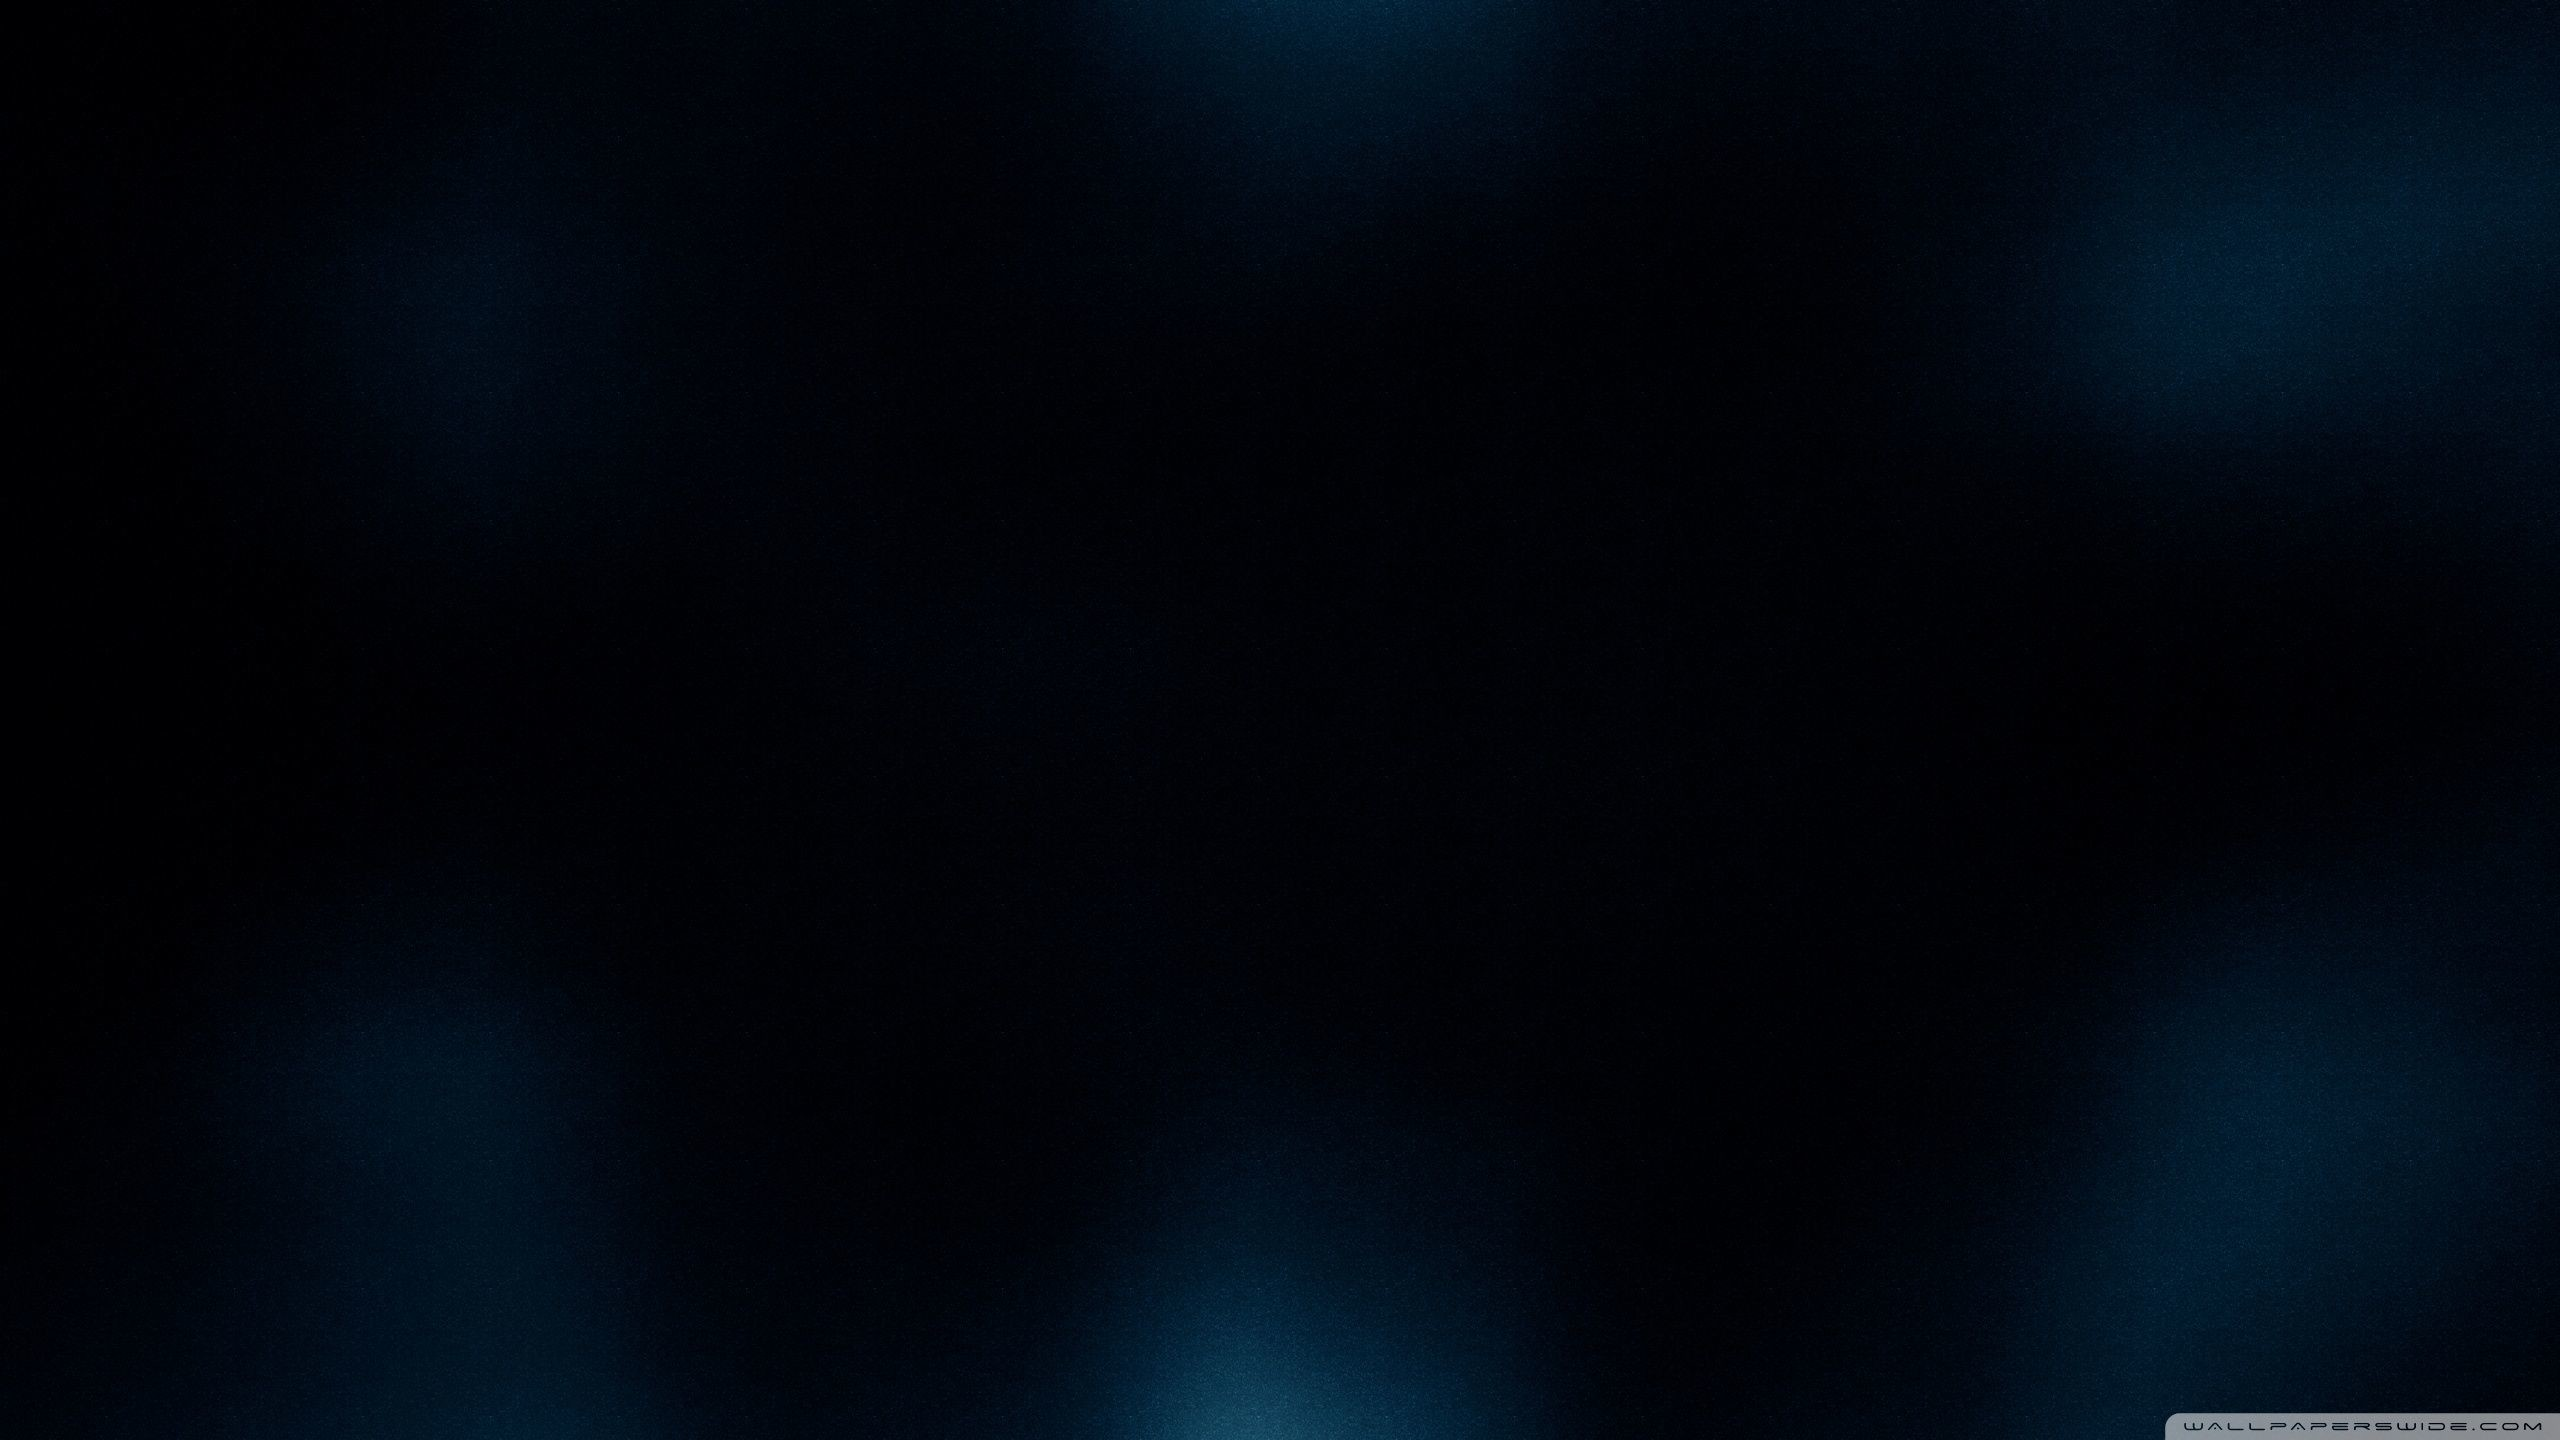 2560x1440 Wallpapers, Dark, Wallpaper, Space, Background, Color, Blue - 2008776